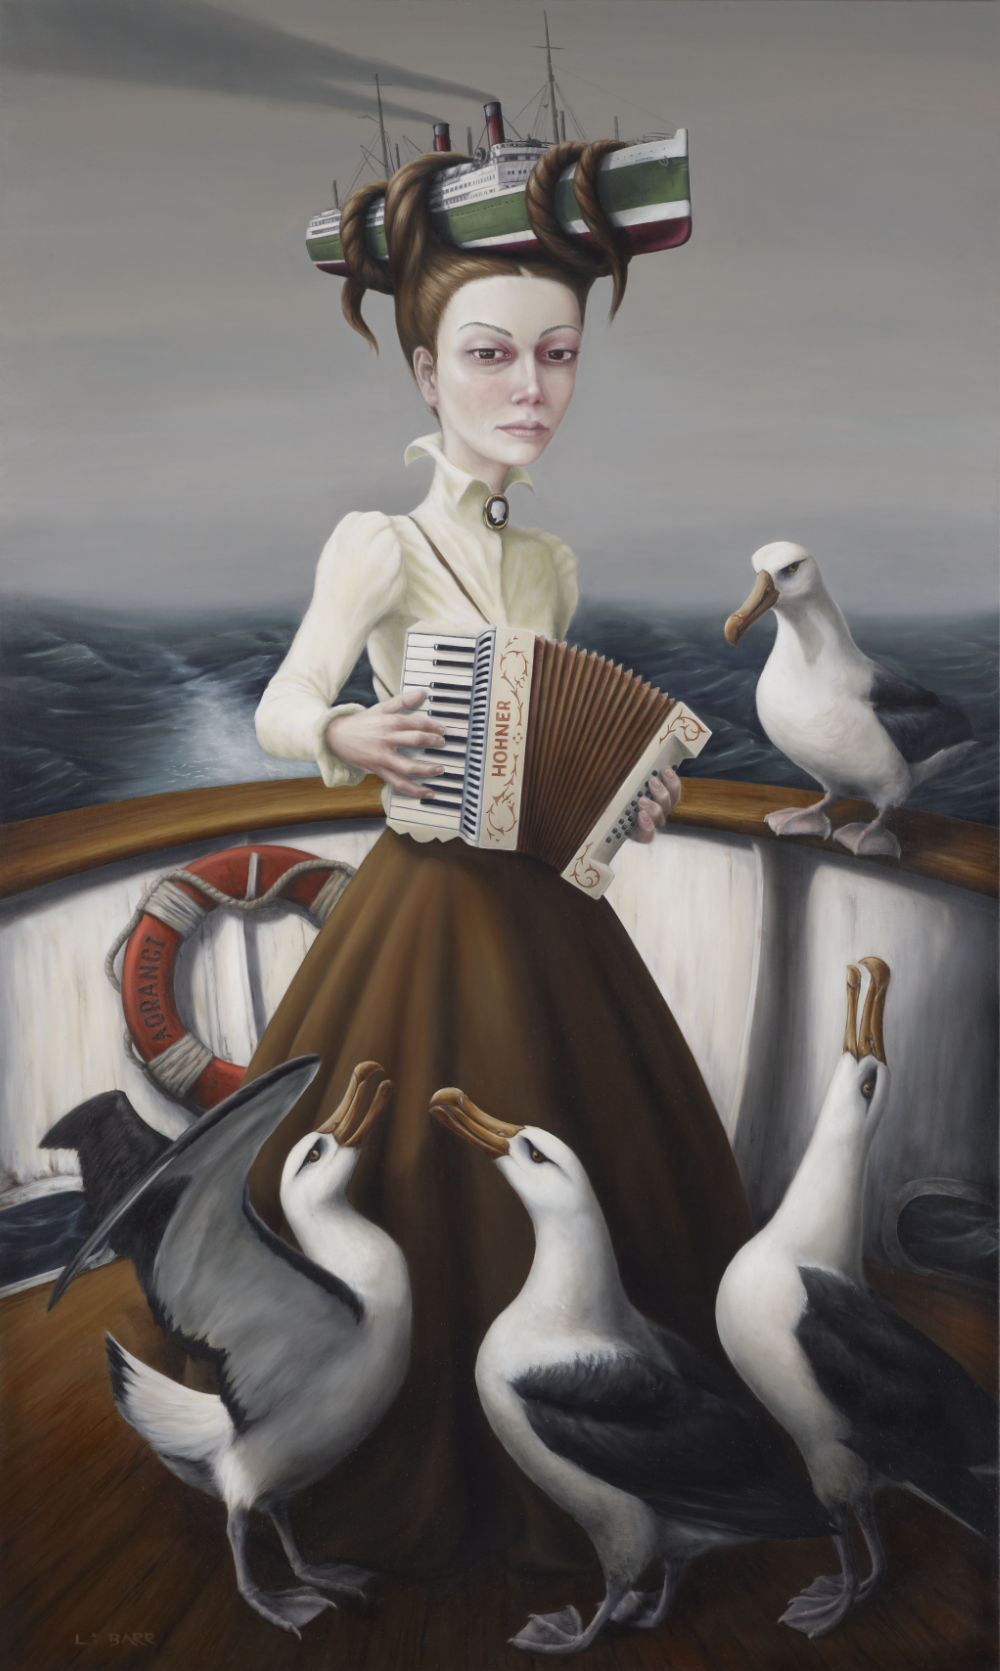 <Liam Barr, historical surrealism, prints for sale, NZ history, online gallery, maori pictures, portraits, contemporary New Zealand artist, albatross, figurative, accordian, fine-art works, pop surrealism, art, Neo-Surrealism, bird art,>